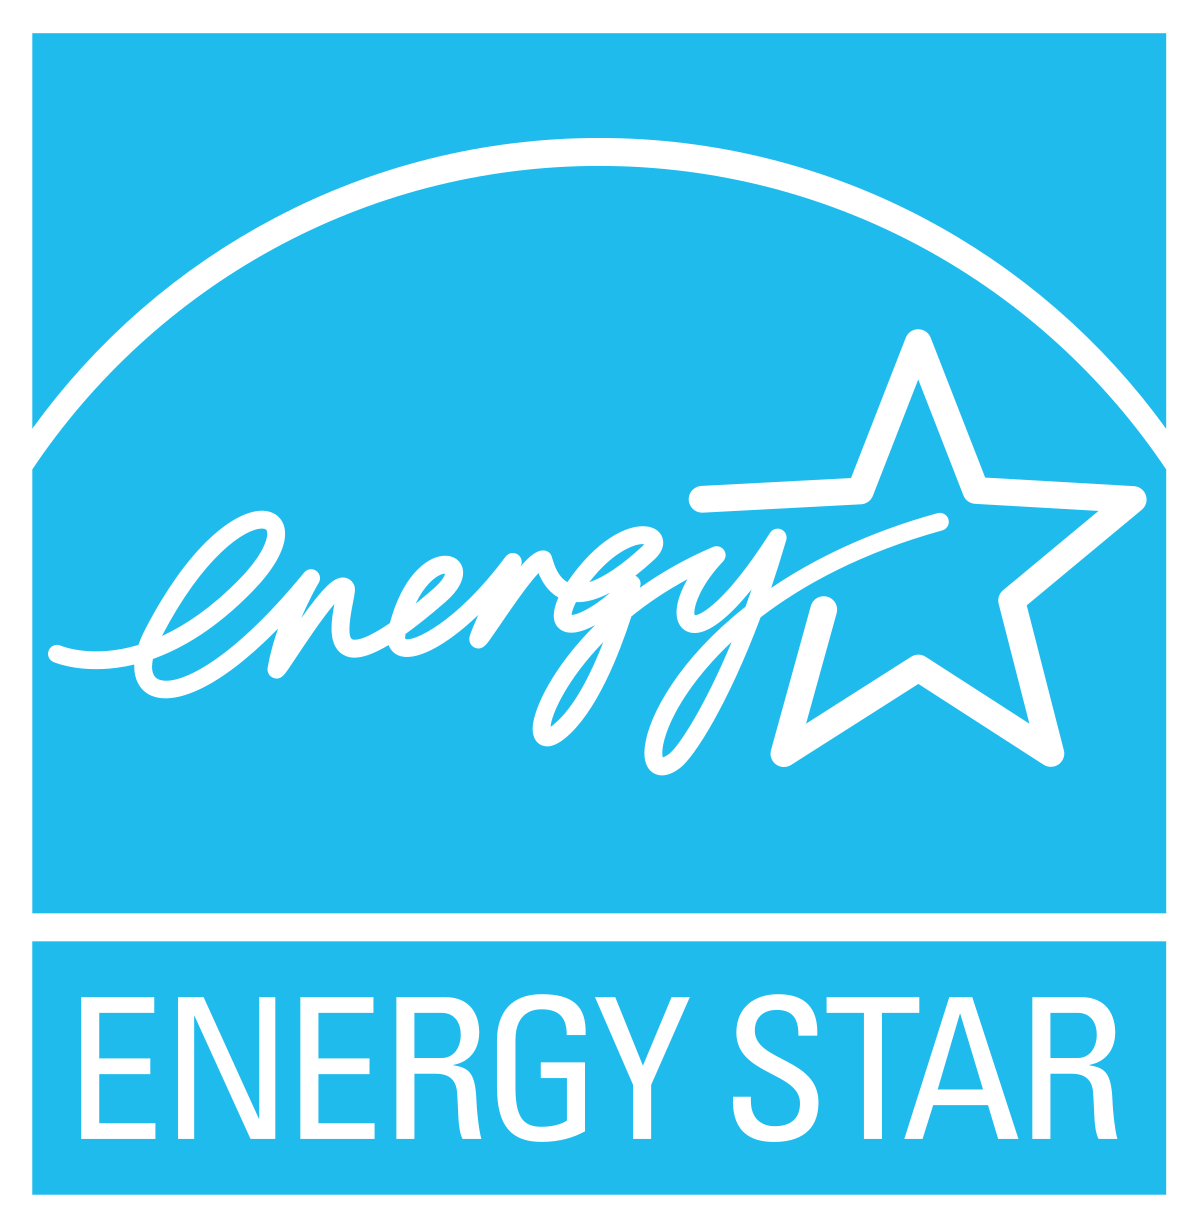 Viewmax Energy Star logo